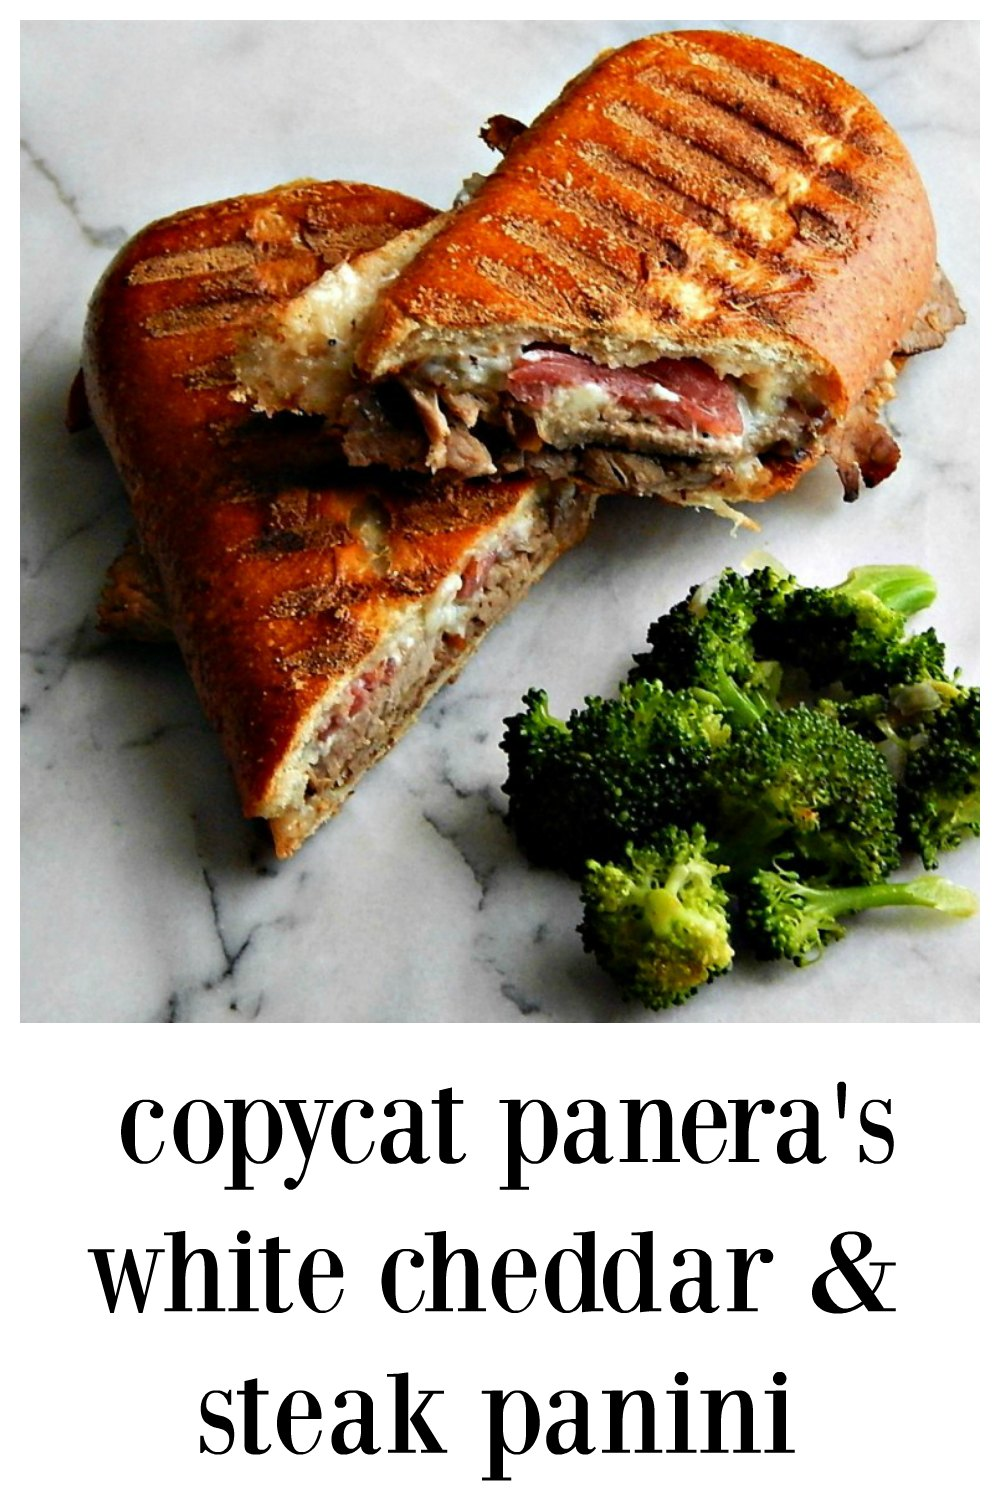 I broke out of my rut at Panera & tried a different sandwich - now I make my Copycat Panera Steak & White Cheddar Panini at home & I want them all the time! #CopycatPaneraSteakWhiteCheddarPanini #PaneraSteakPanini #PaneraSteakandWhiteCheddar Panini